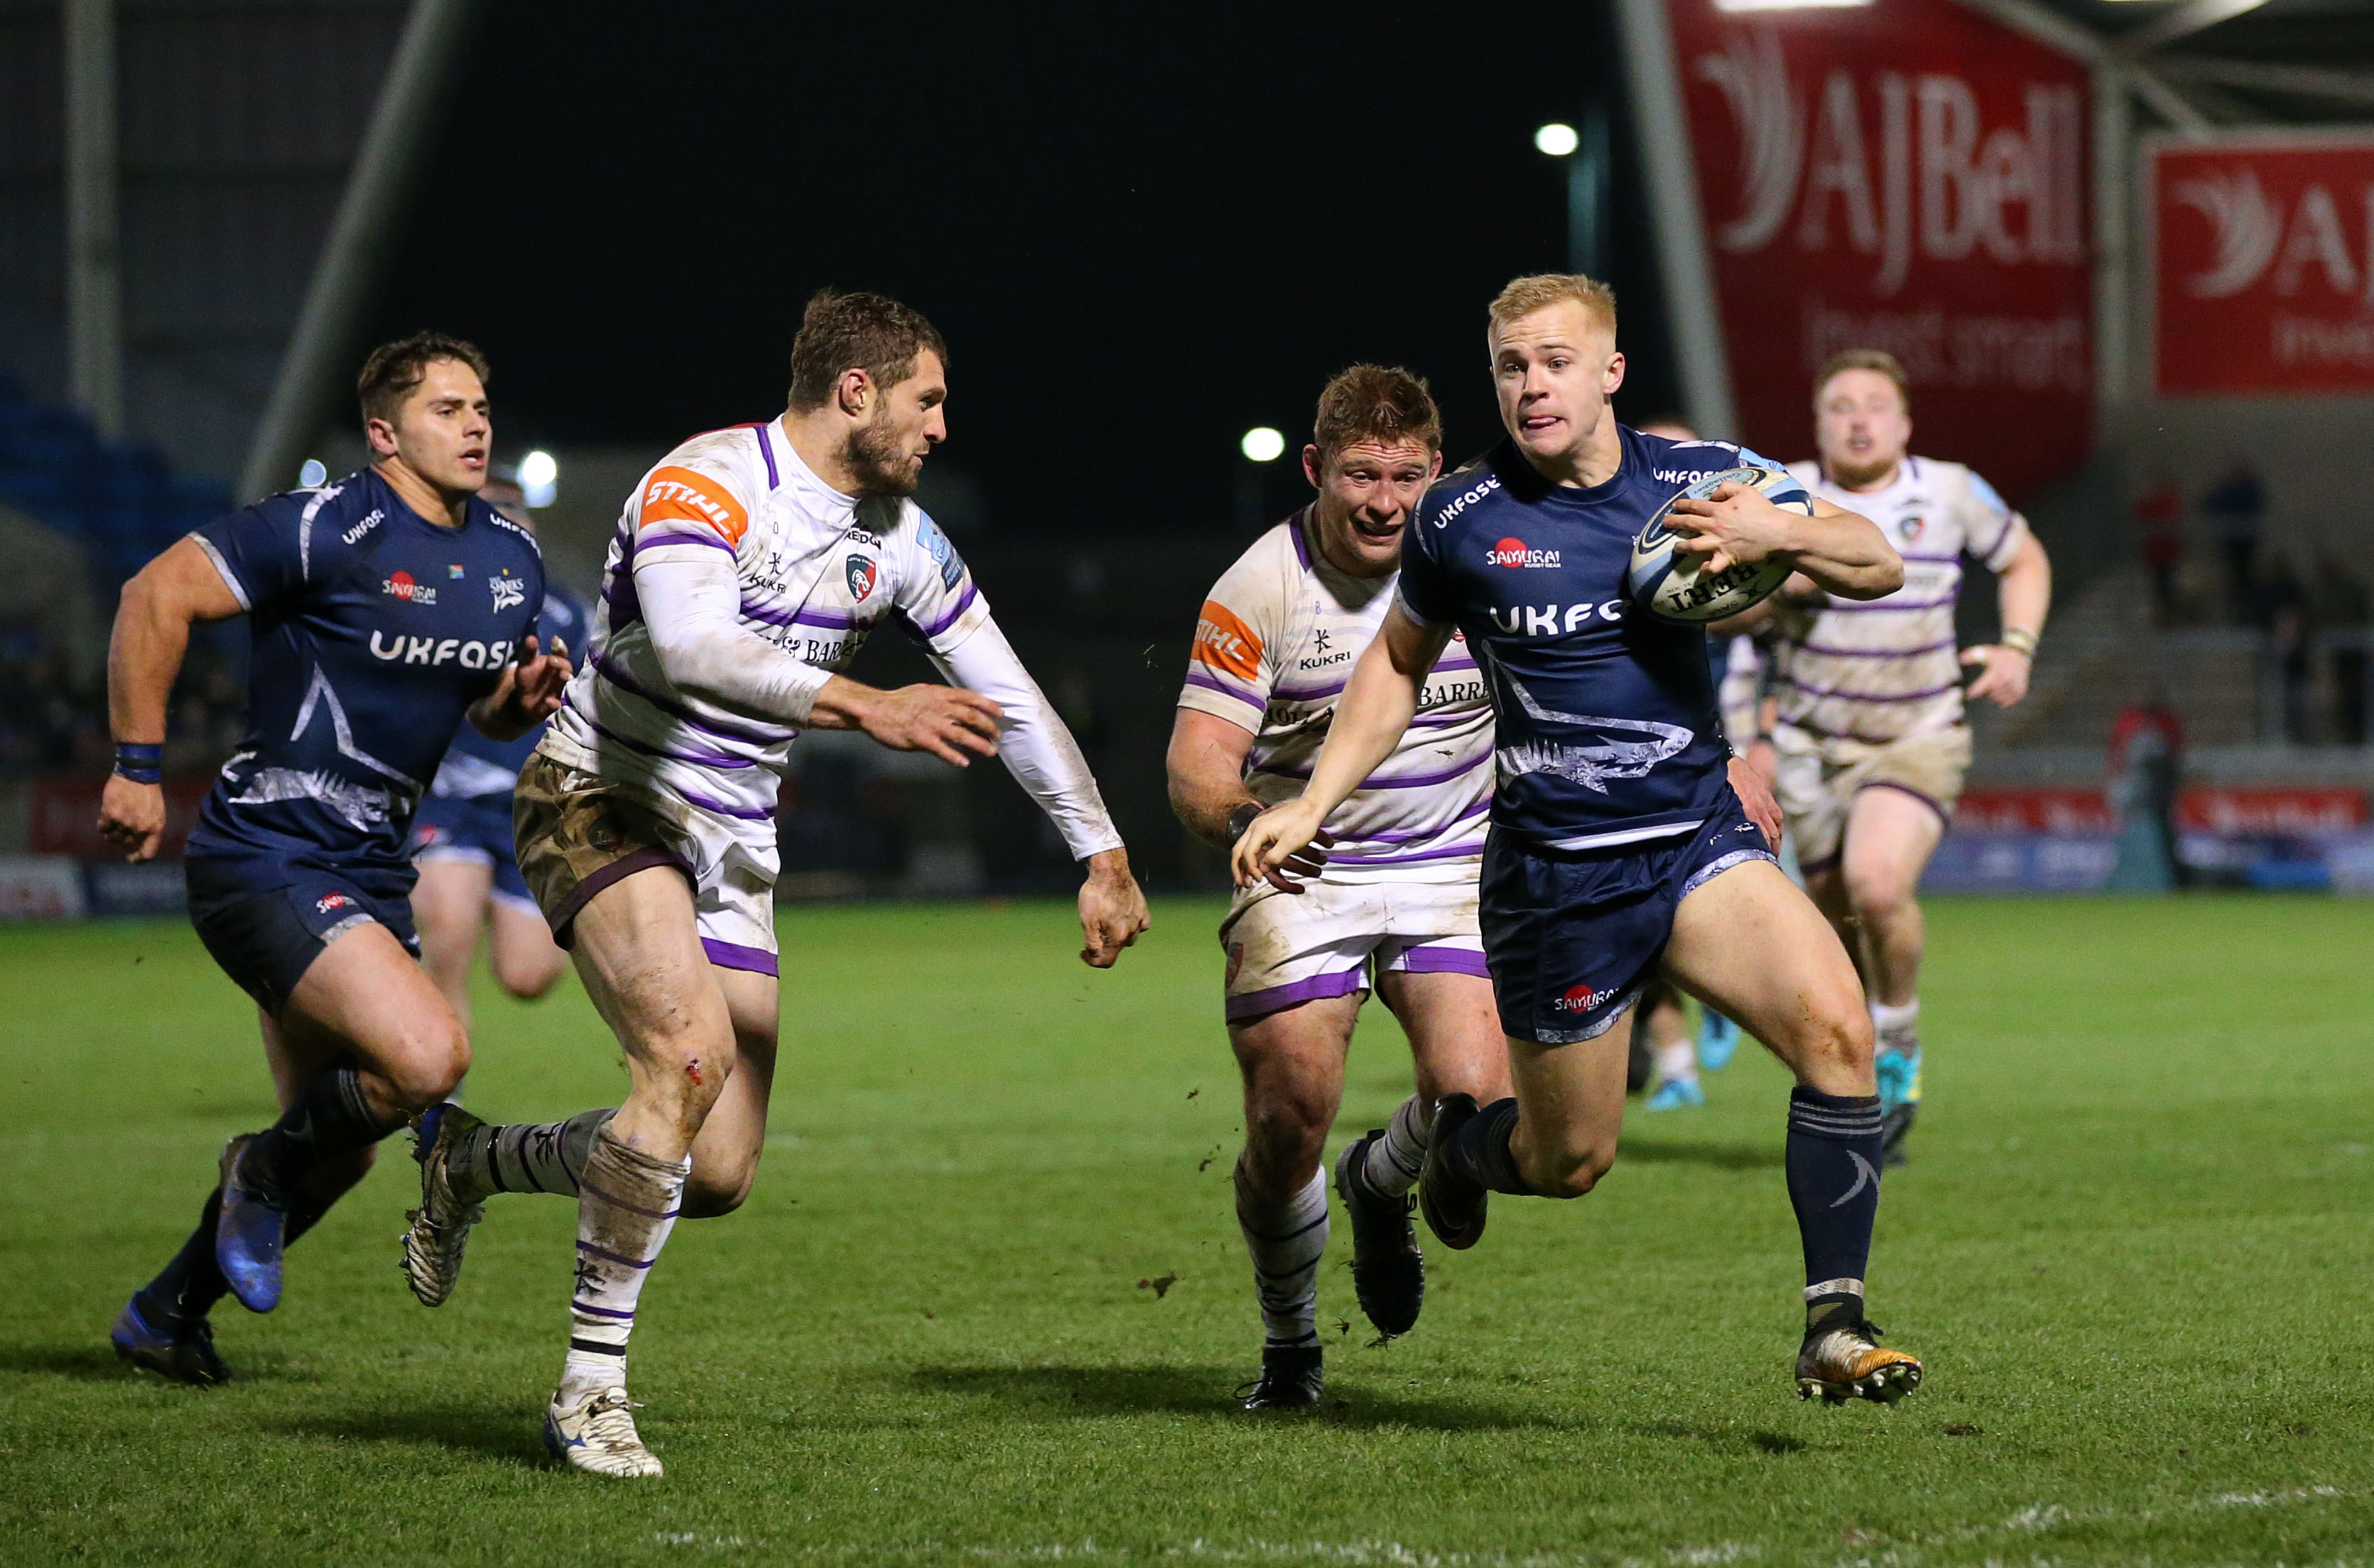 MATCH REPORT – SALE SHARKS 32 – 5 LEICESTER TIGERS